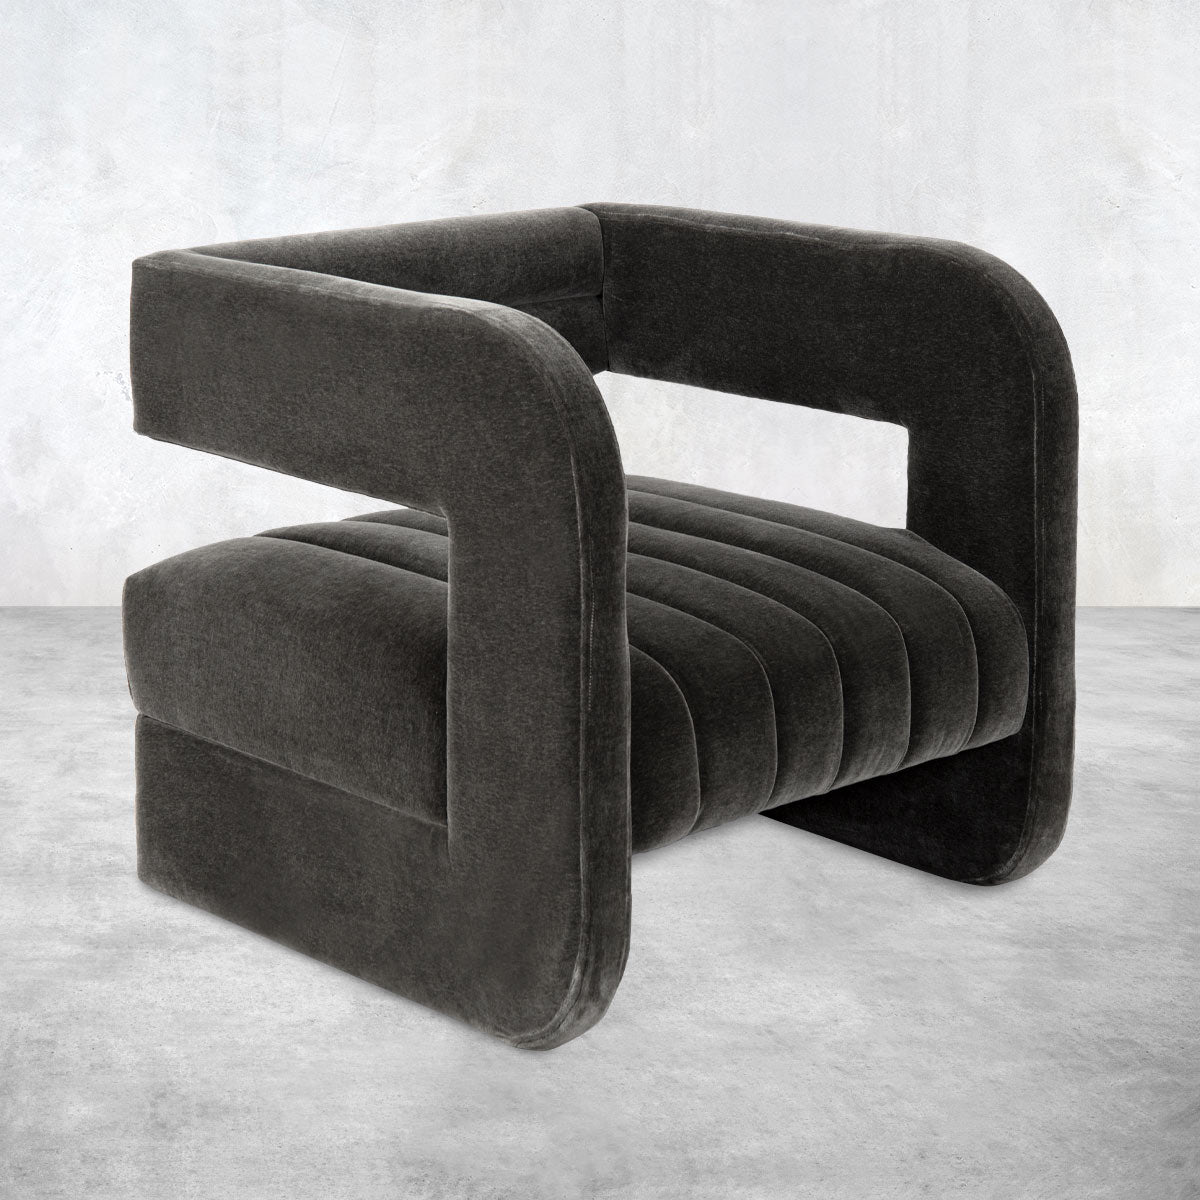 Studio 54 Occasional Chair